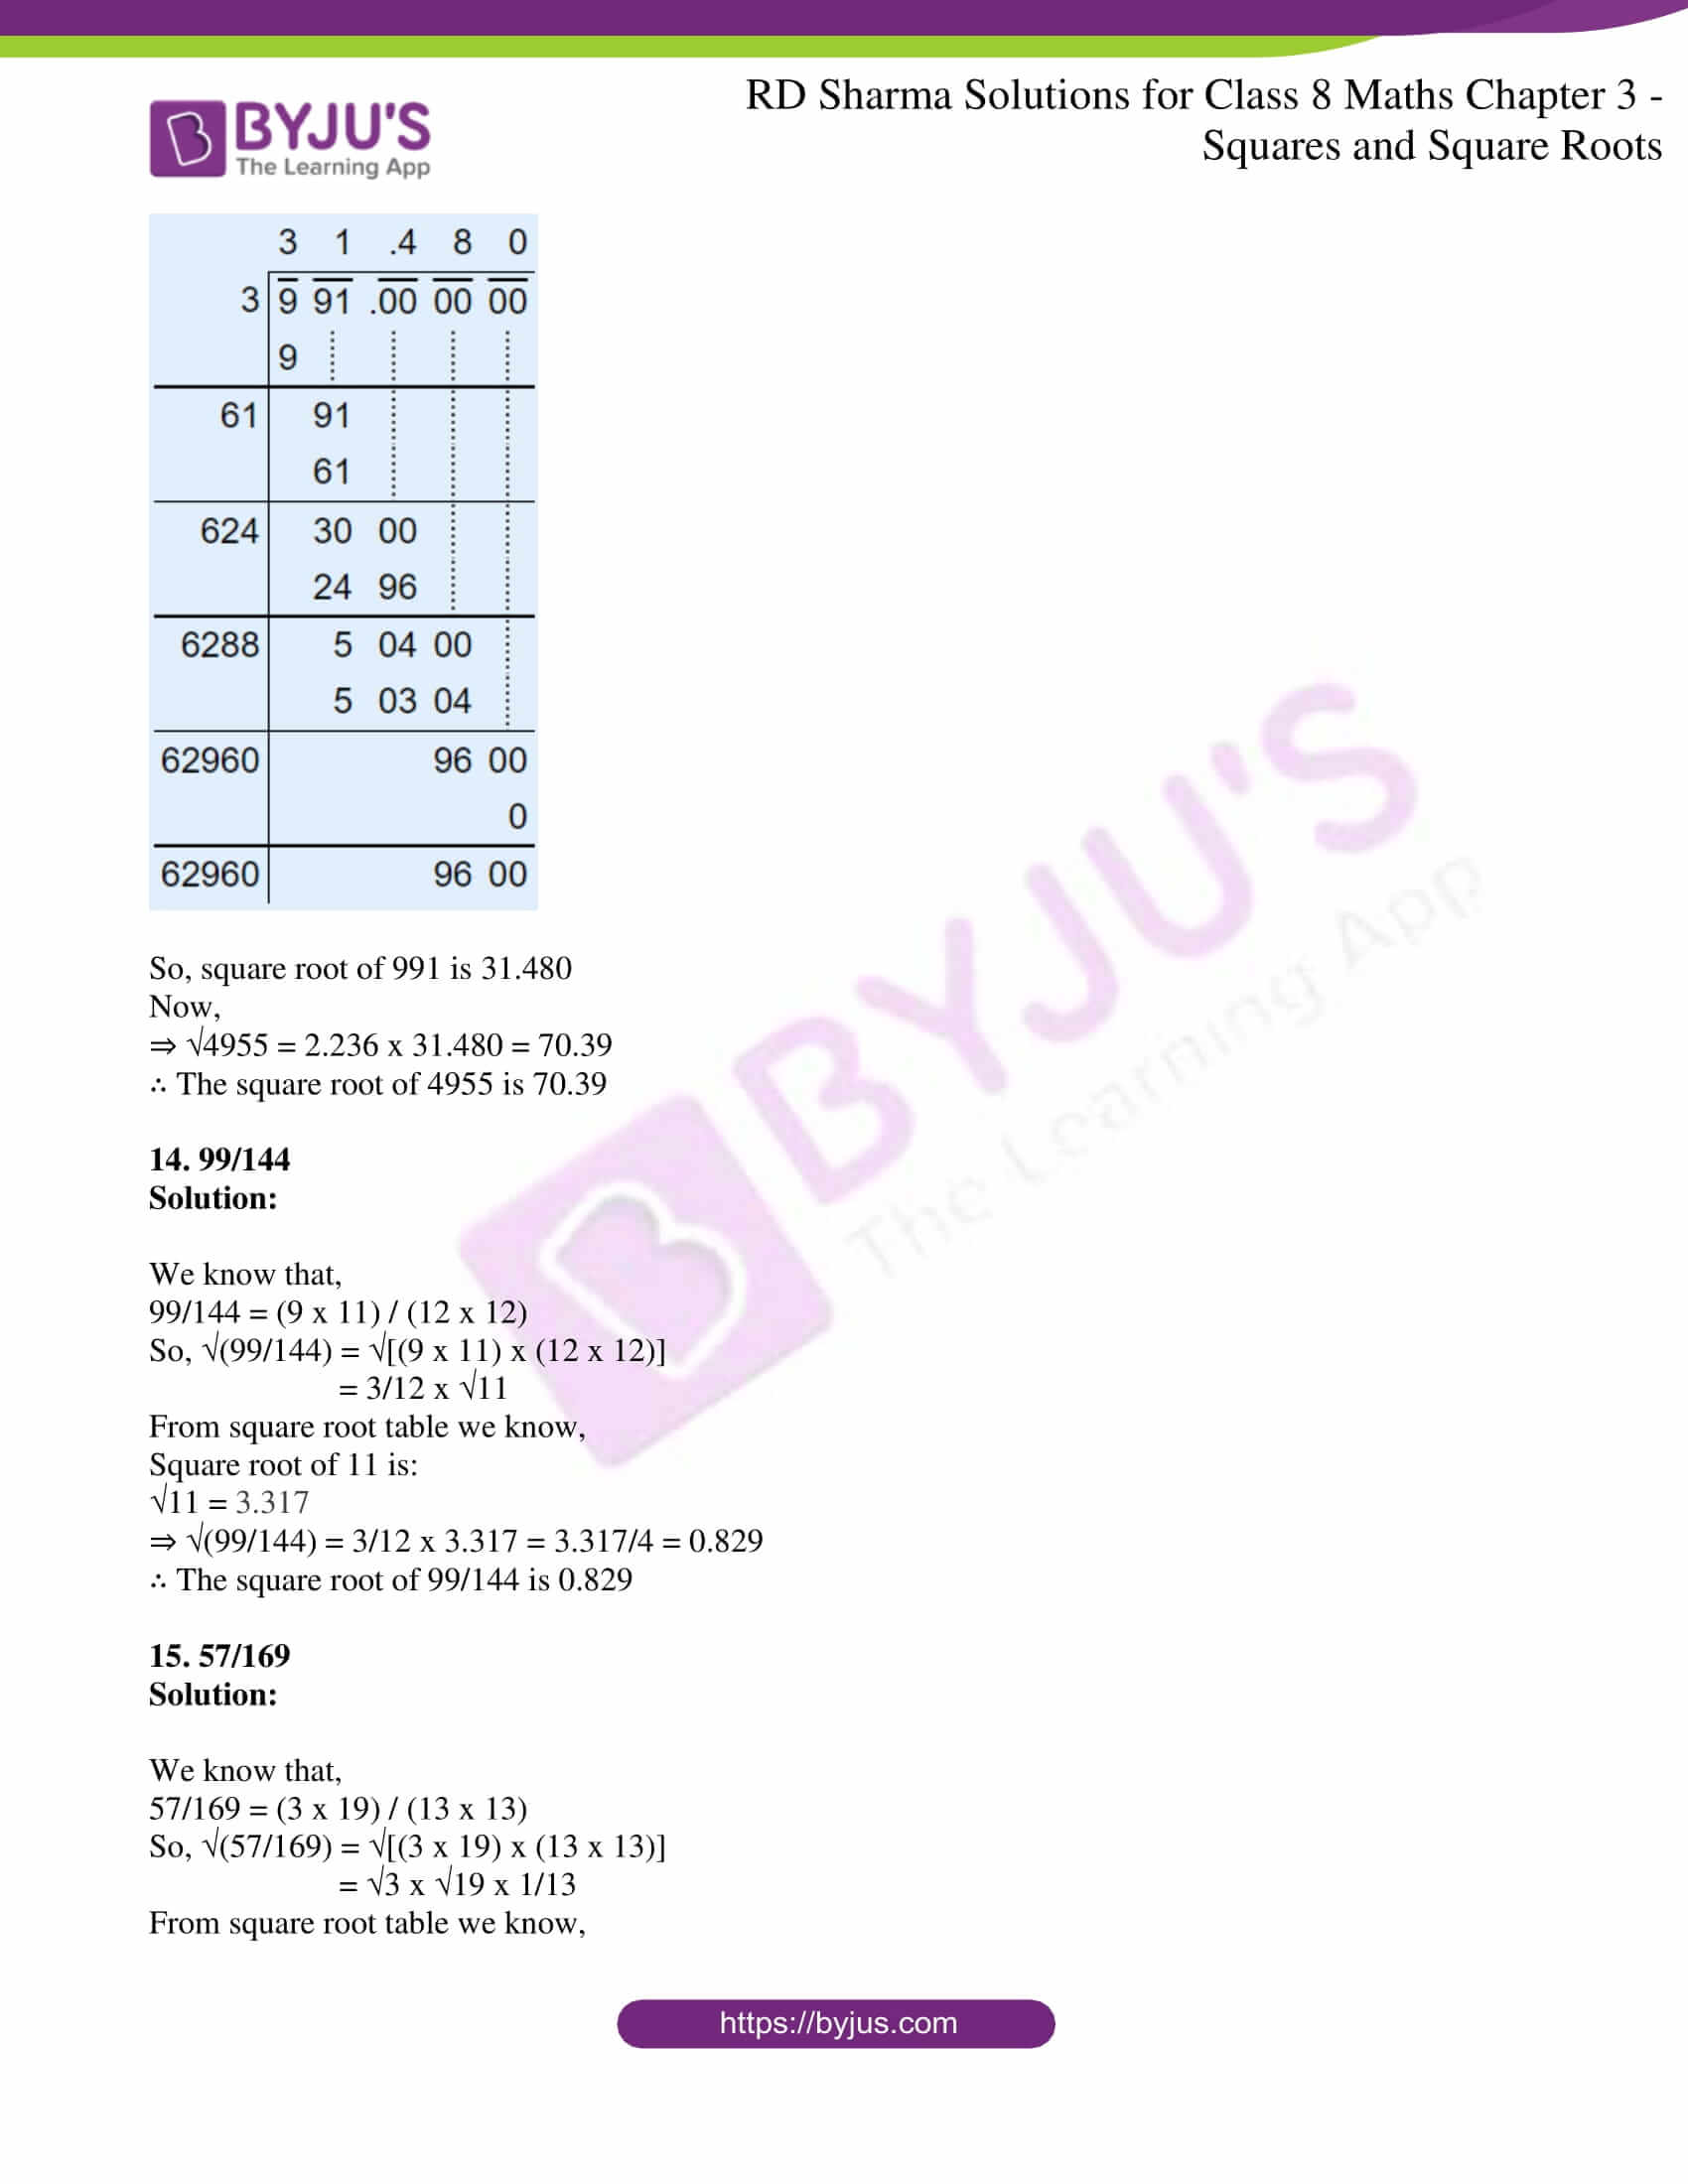 rd sharma solutions jul26 class 8 maths chapter 3 squares and square roots exercise 3 9 6